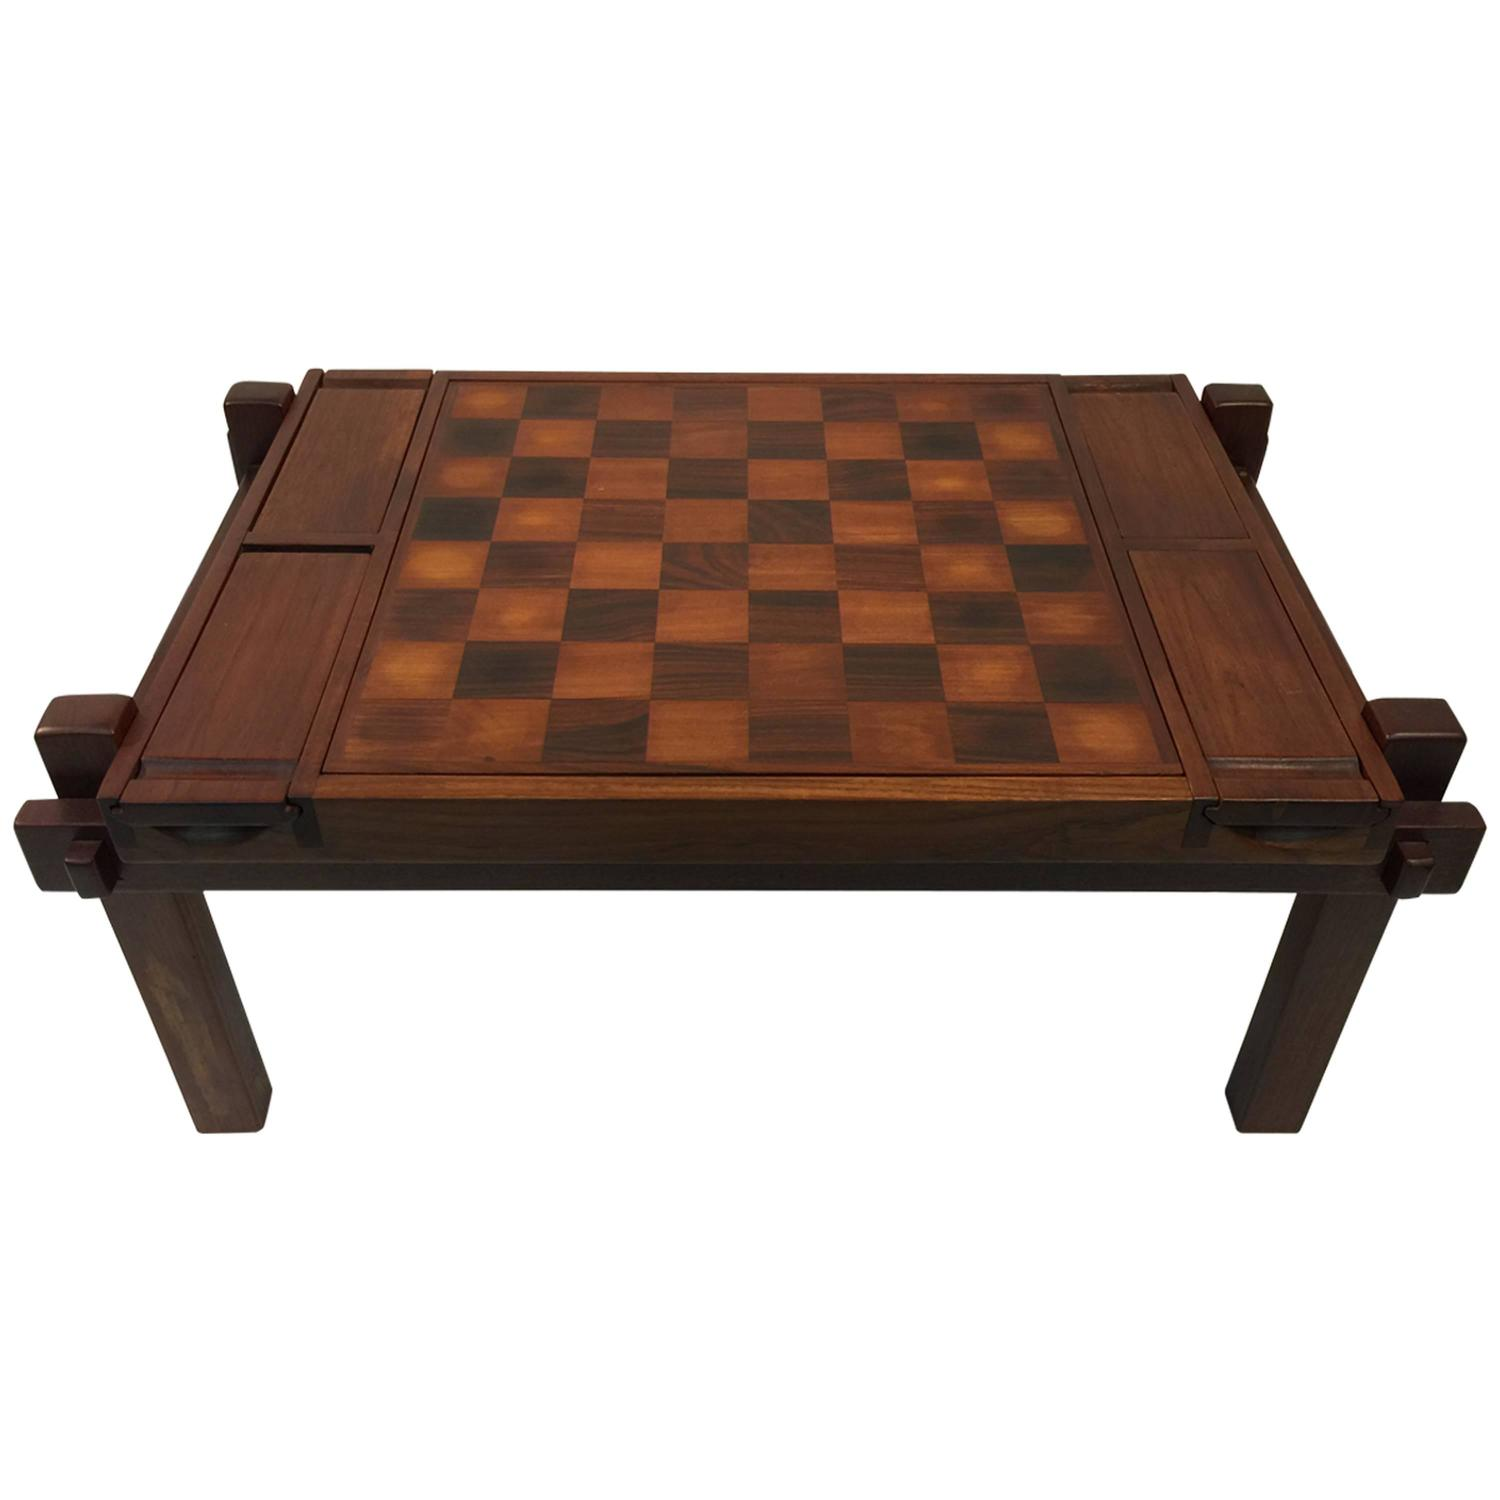 Fantastic Danish Modern Rosewood and Teak Game Table Backgammon